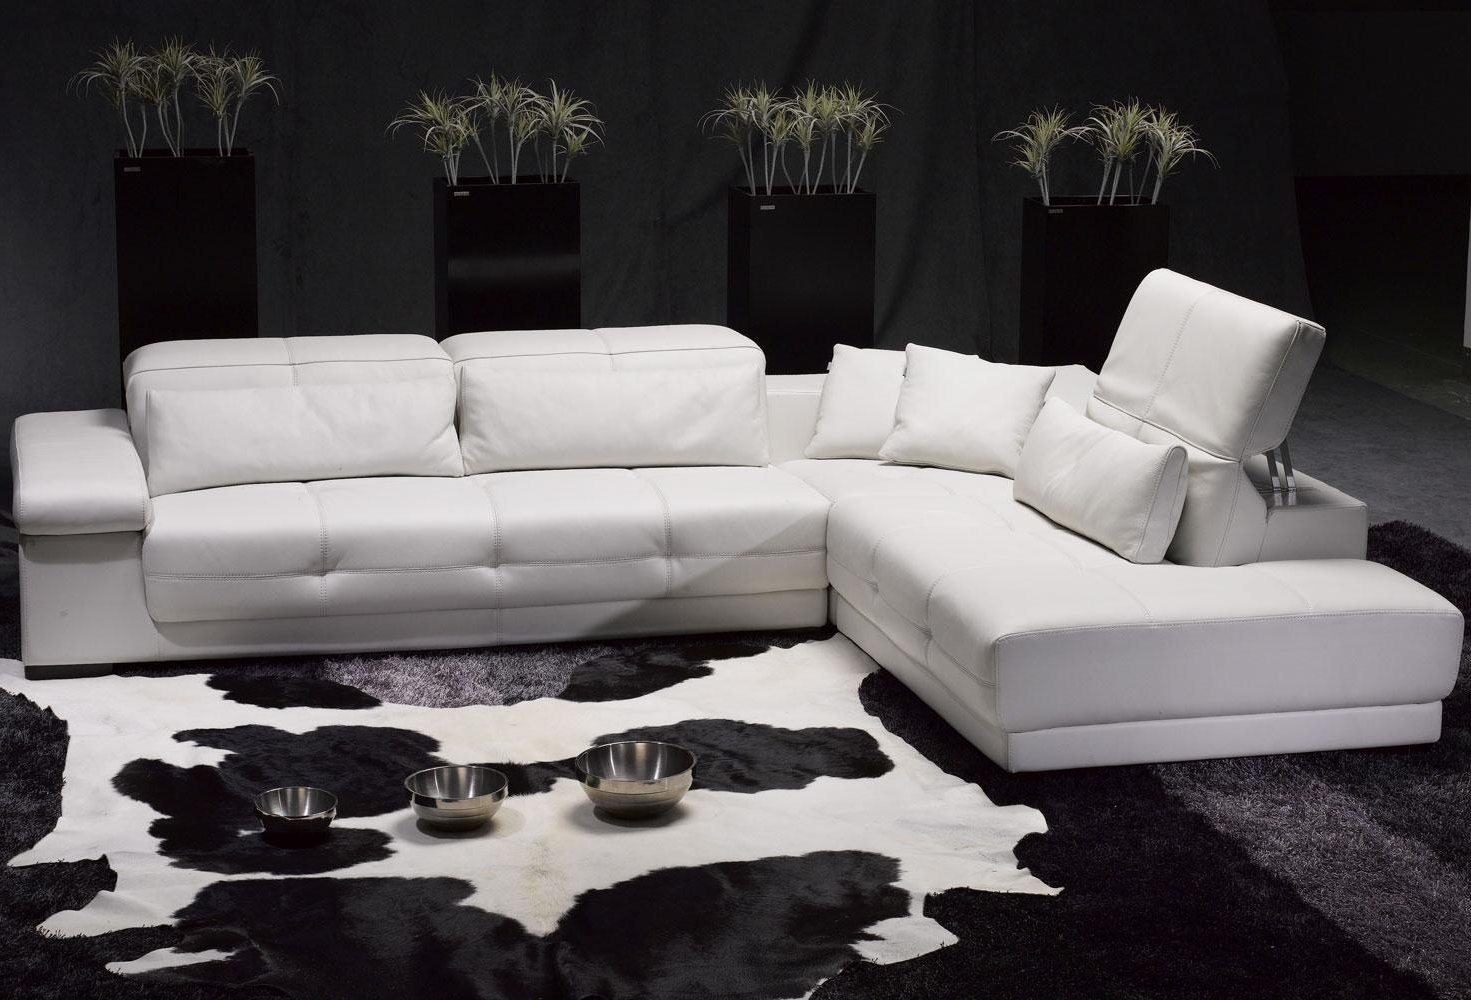 2019 Alluring White Leather Sectional Sofa Ideas For Living Room Pertaining To High End Leather Sectional Sofas (View 10 of 20)